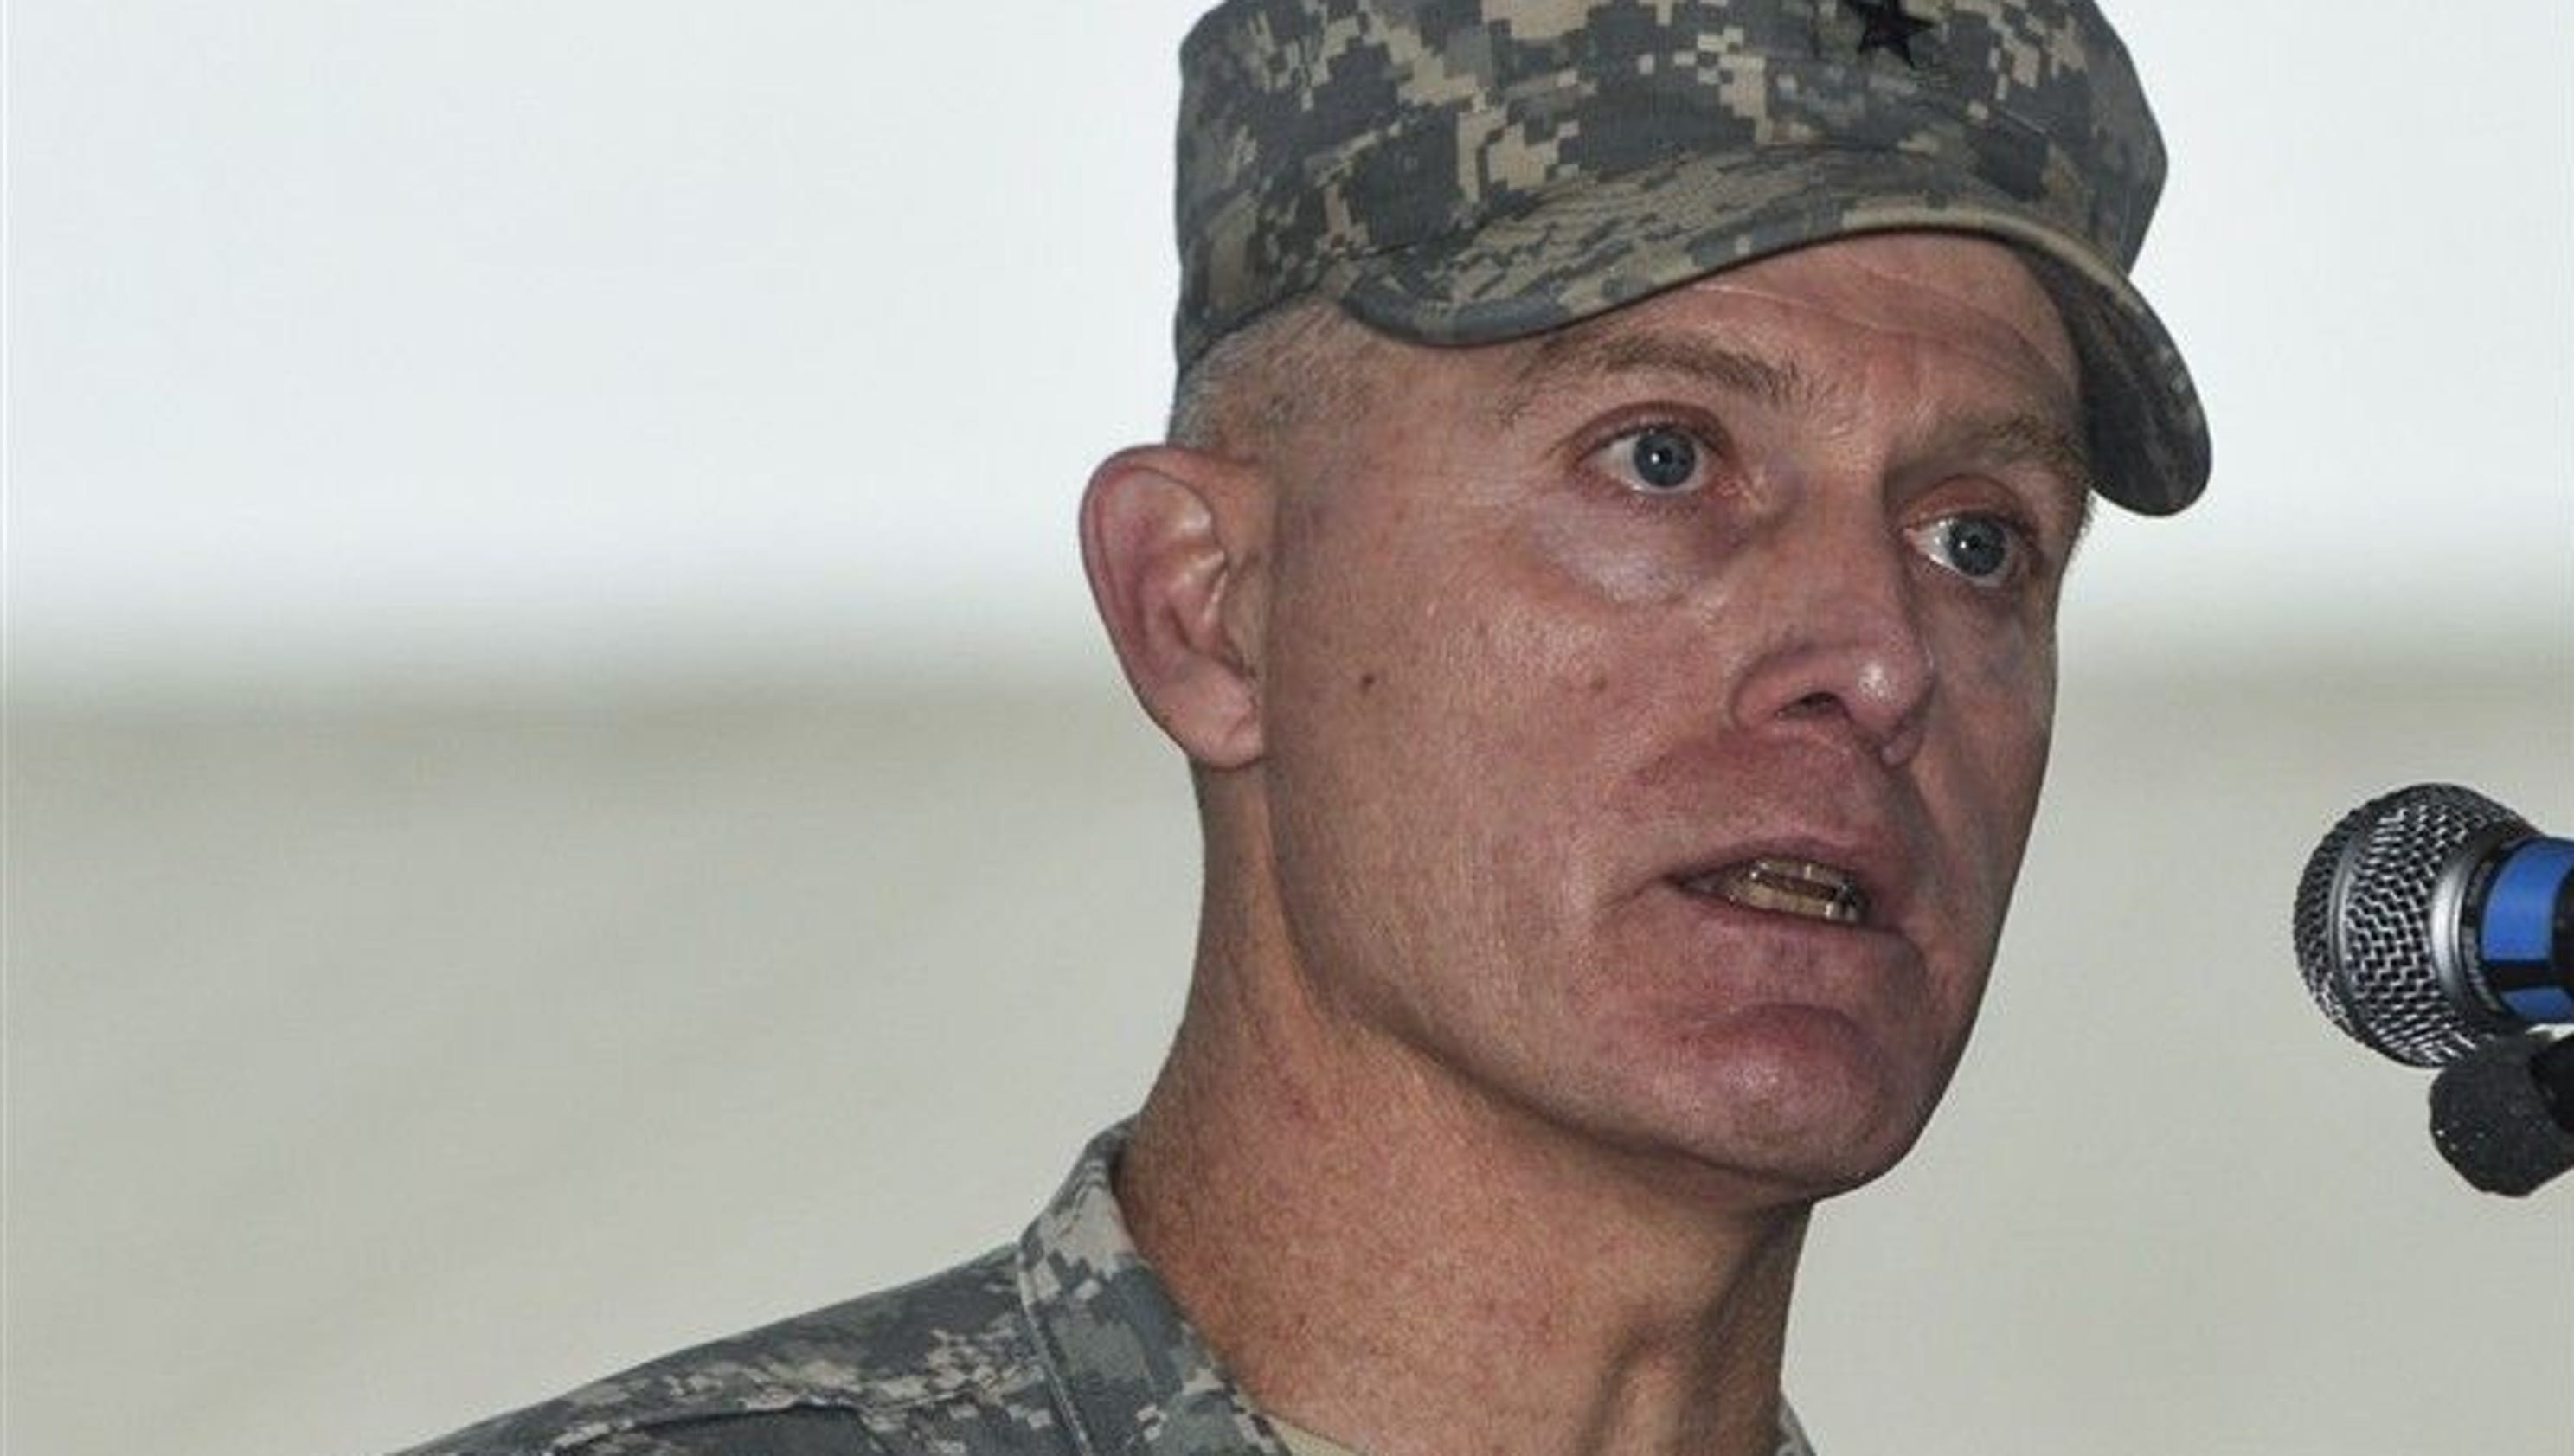 Disgraced Army general fired after 'inappropriate' relationship  with young woman on staff